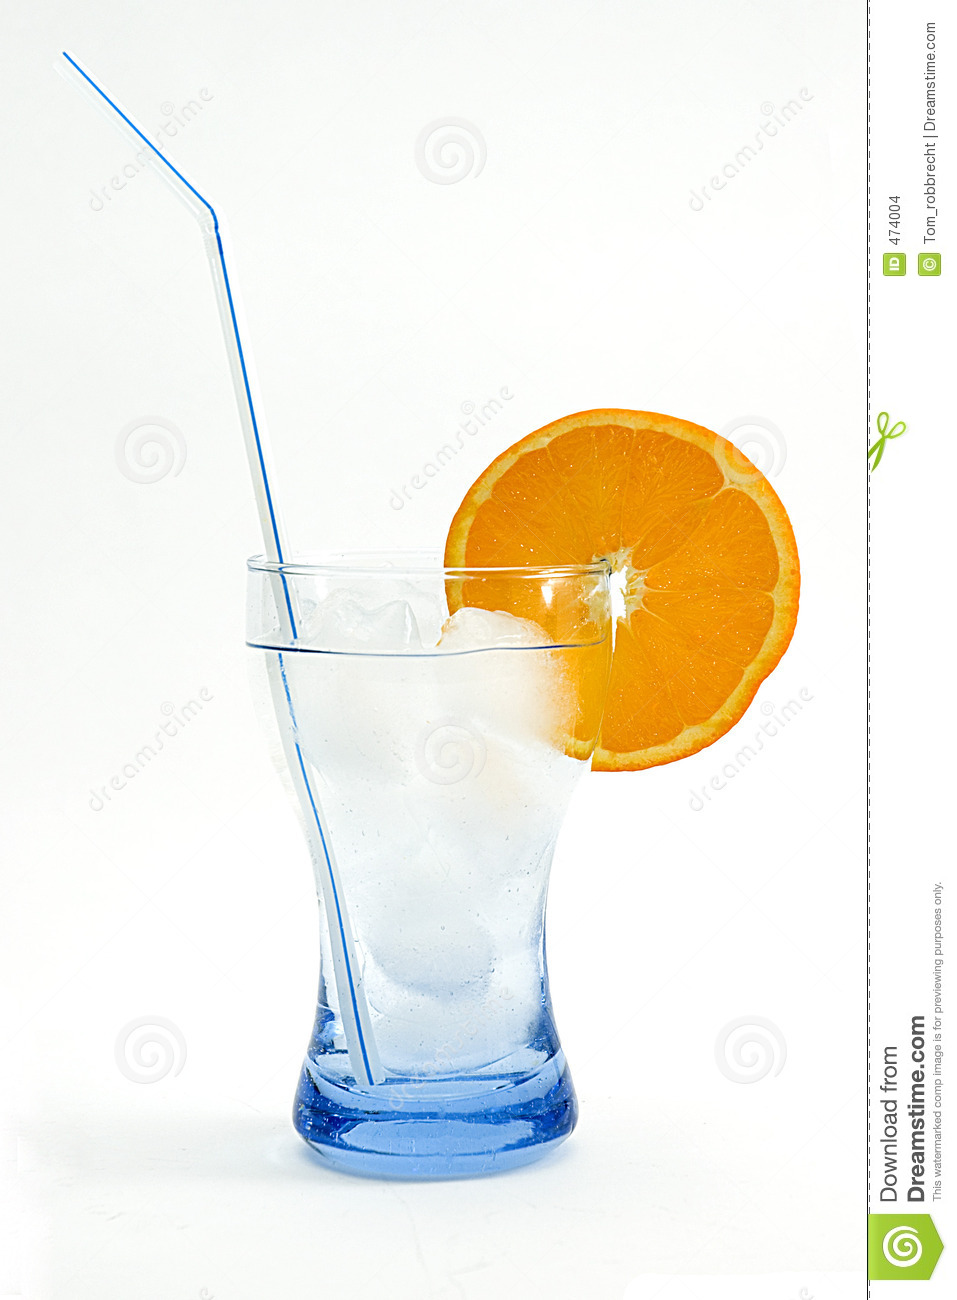 Cool drink in blue glass with ice cubes and orange white background.